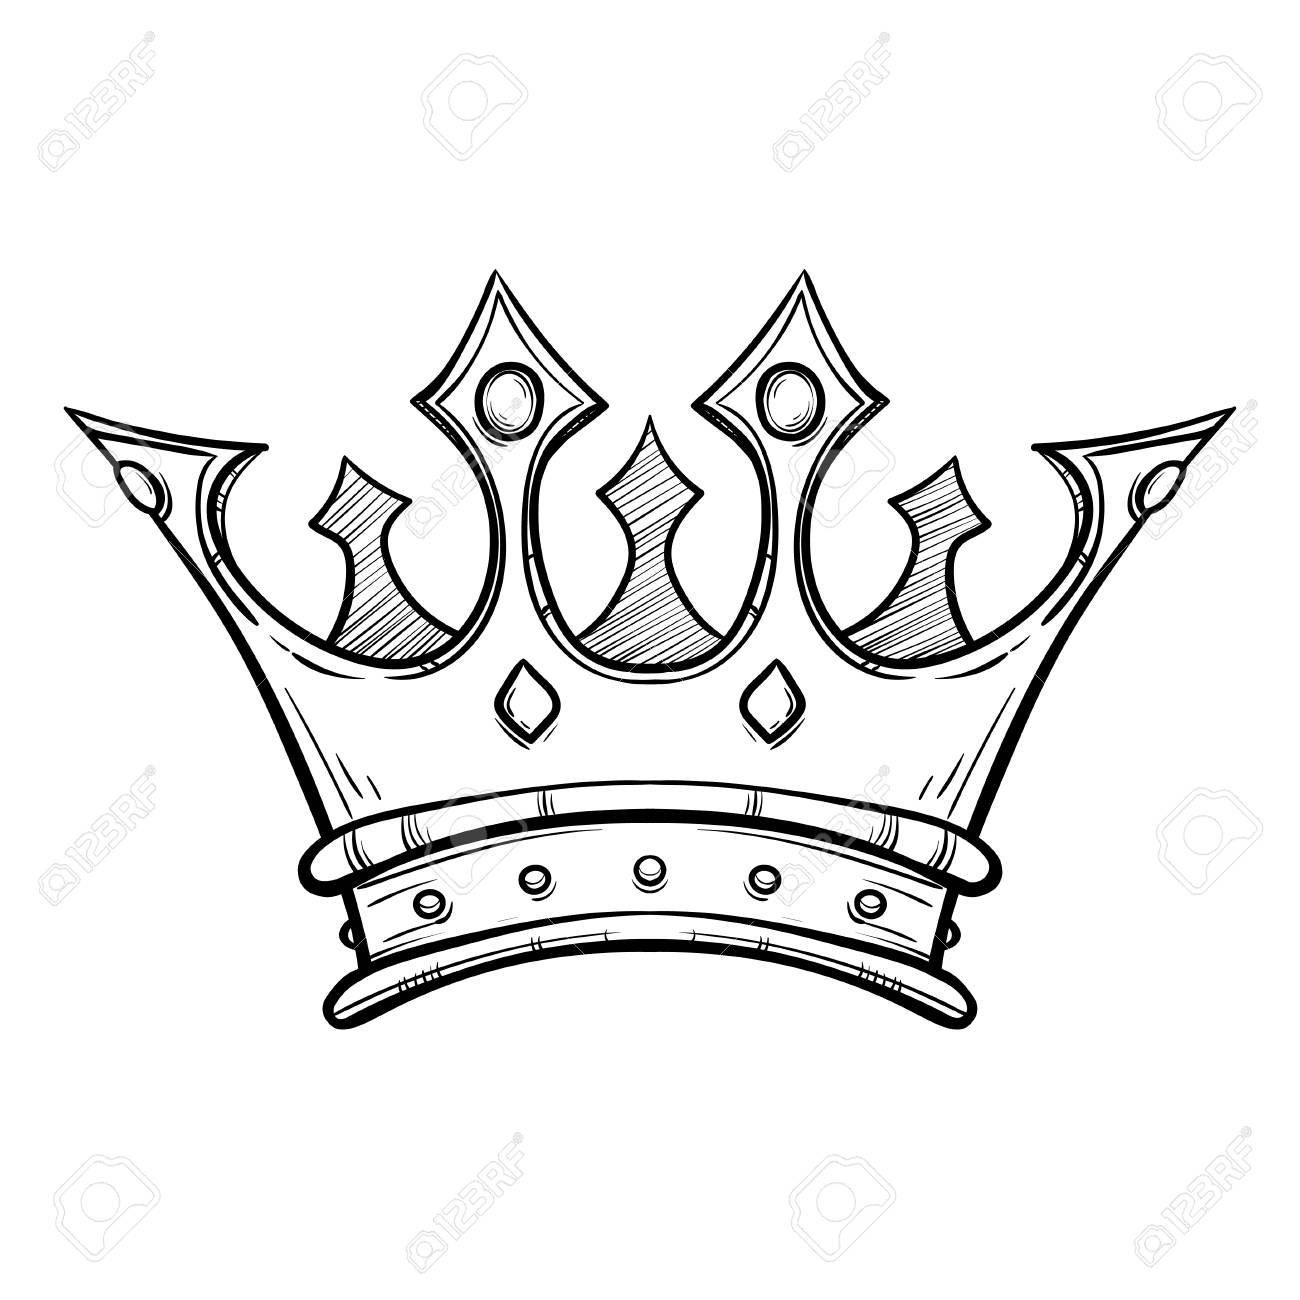 Hand drawn king crown royalty free cliparts vectors and stock hand drawn king crown stock vector 88393041 thecheapjerseys Choice Image